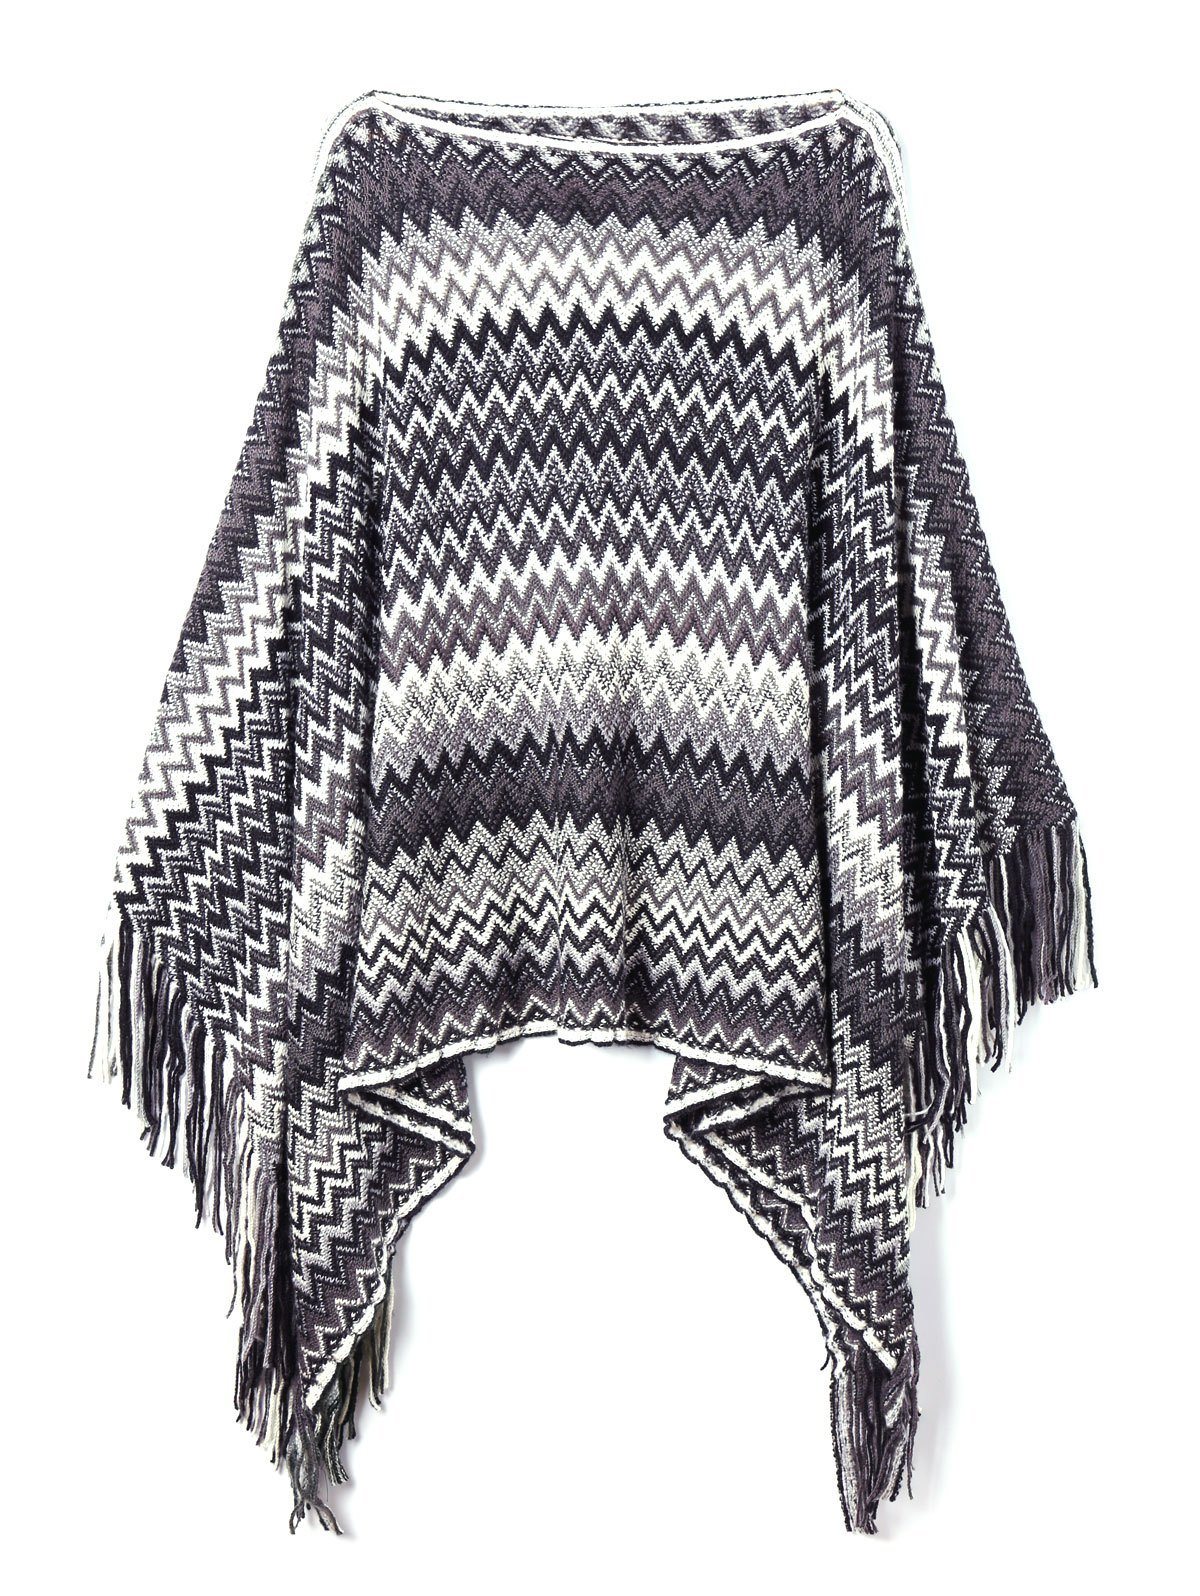 Fringed Zig Zag Plus Size Poncho SweaterWOMEN<br><br>Size: 5XL; Color: COLORMIX; Type: Pullovers; Material: Cotton,Polyester; Sleeve Length: Sleeveless; Collar: Slash Neck; Style: Fashion; Season: Fall,Spring; Pattern Type: Chevron/Zig Zag; Weight: 0.2500kg; Package Contents: 1 x Poncho Sweater;